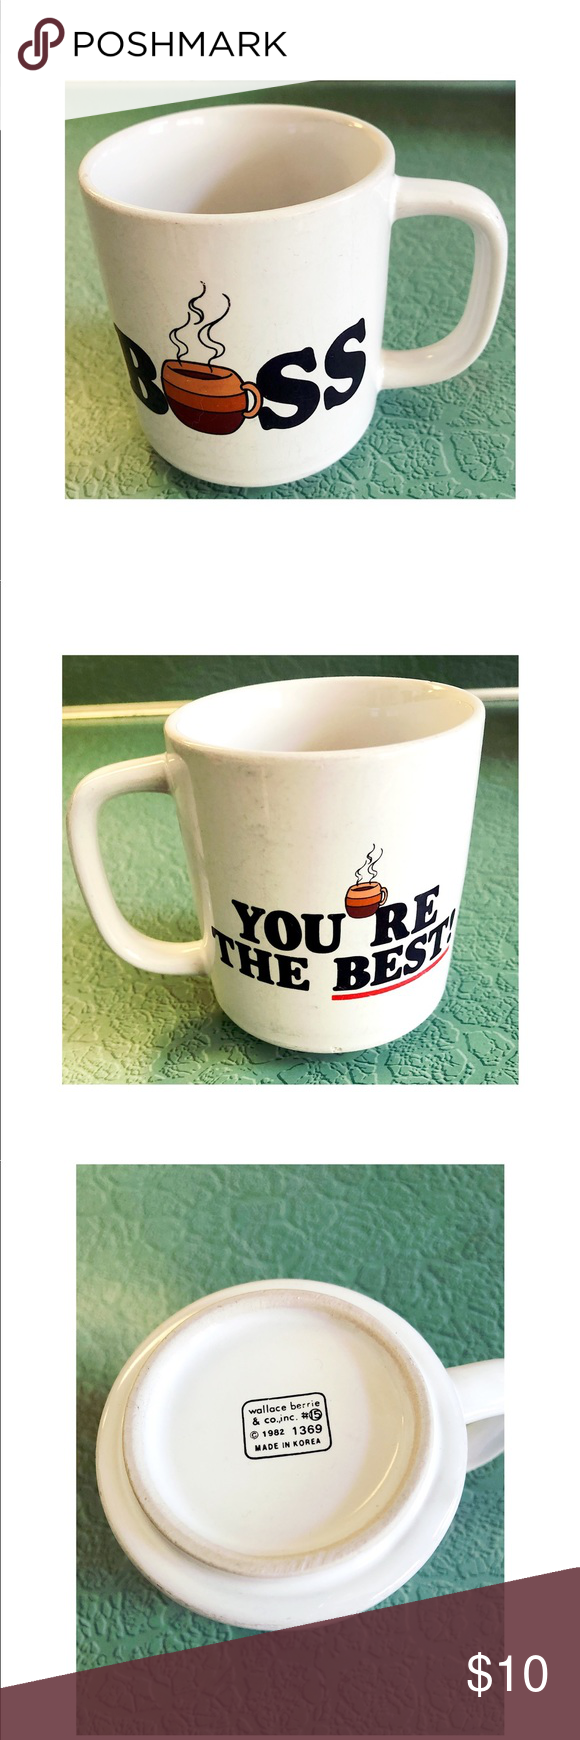 "Vintage Best Boss Coffee Mug Vintage / Retro ""you're the best boss"" graphic novelty coffee cup. Wallace Berrie & Co Inc. used vintage condition. Vintage Kitchen Coffee & Tea Accessories #bosscoffee Vintage Best Boss Coffee Mug Vintage / Retro ""you're the best boss"" graphic novelty coffee cup. Wallace Berrie & Co Inc. used vintage condition. Vintage Kitchen Coffee & Tea Accessories #bosscoffee Vintage Best Boss Coffee Mug Vintage / Retro ""you're the best boss"" graphic novelty co #bosscoffee"